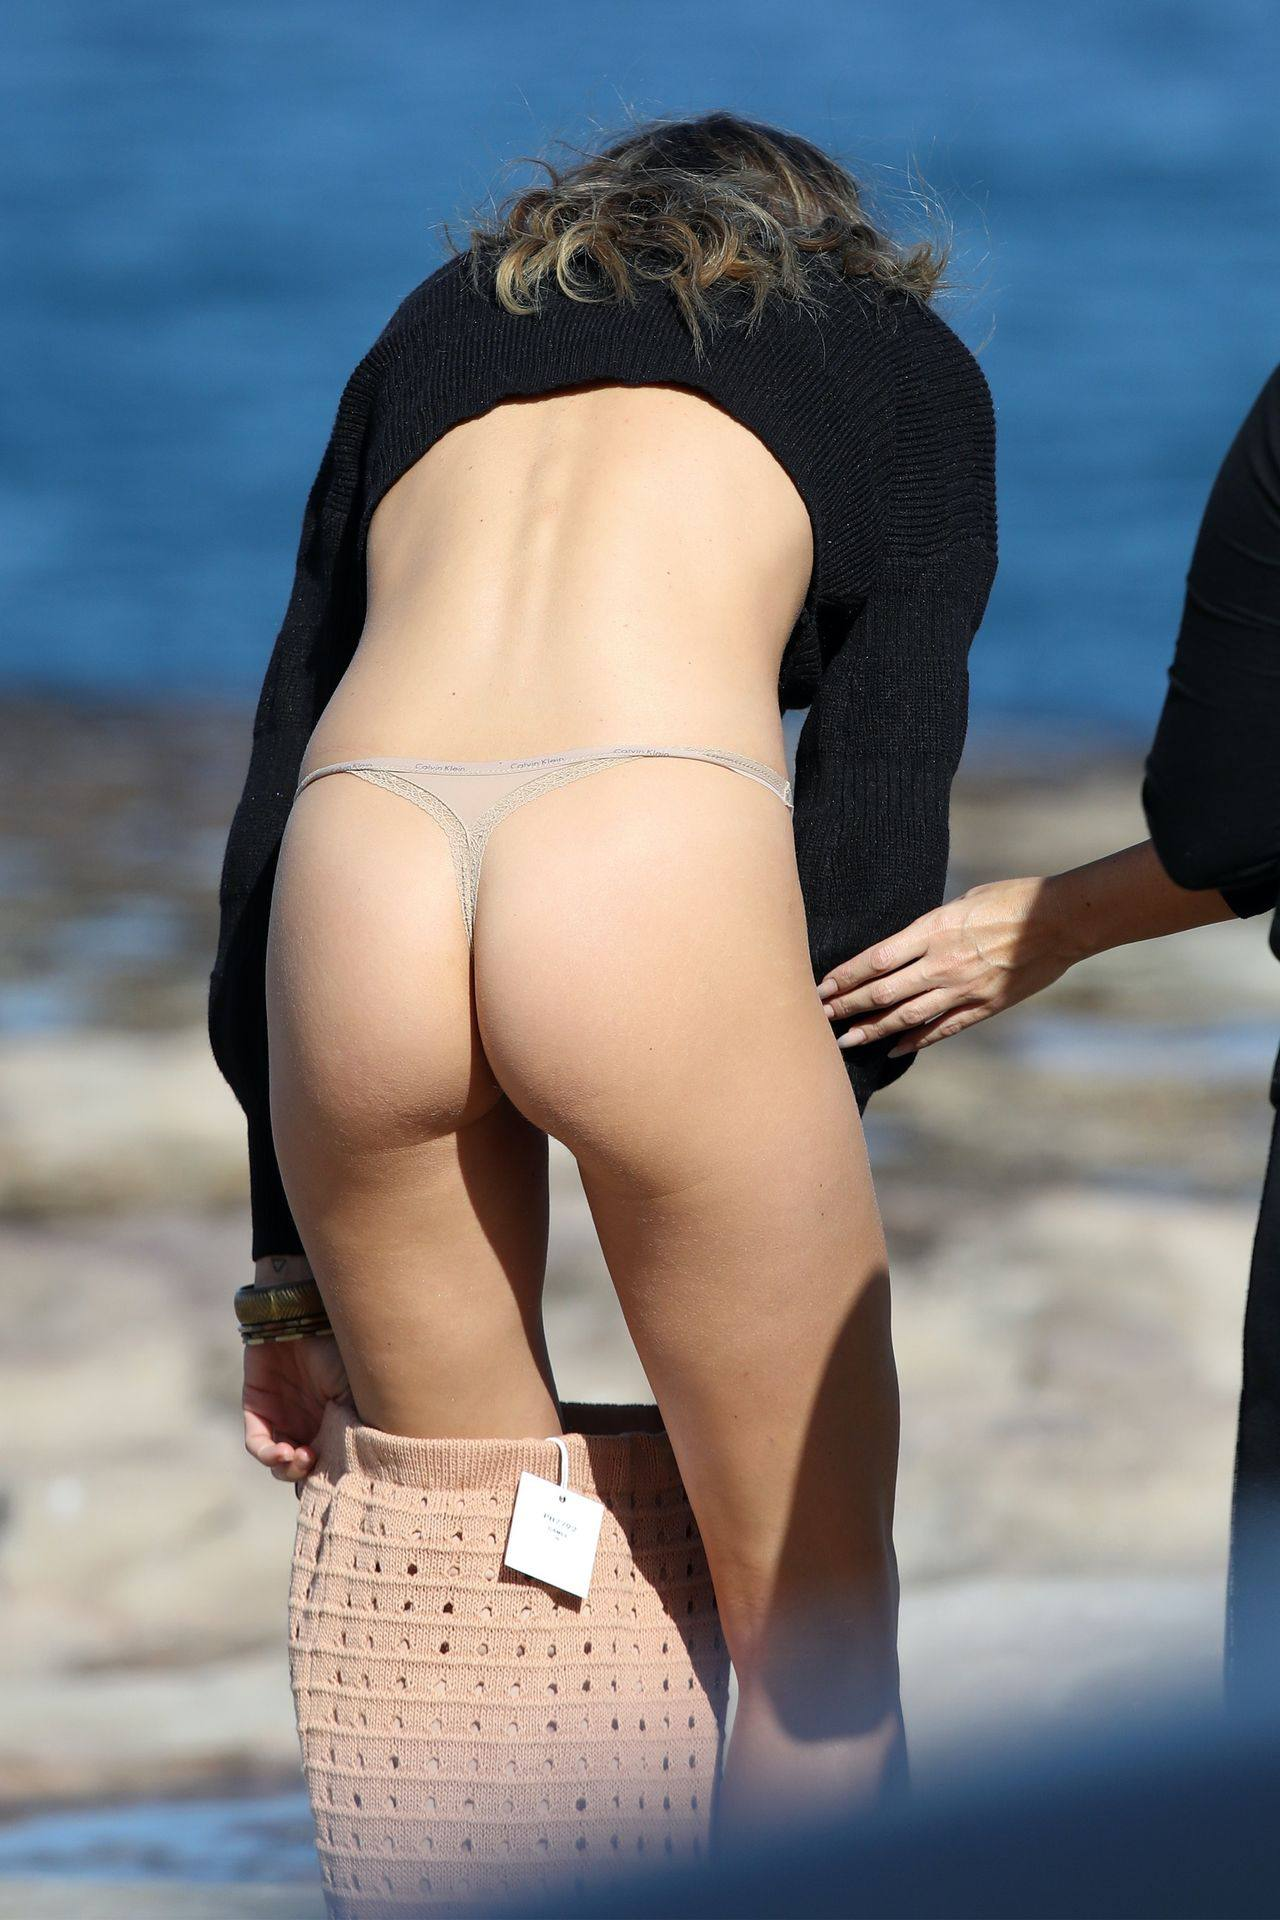 Stephanie Claire Smith – Sexy Big Camel Toe In Panties At Photoshoot In Sydney 0017